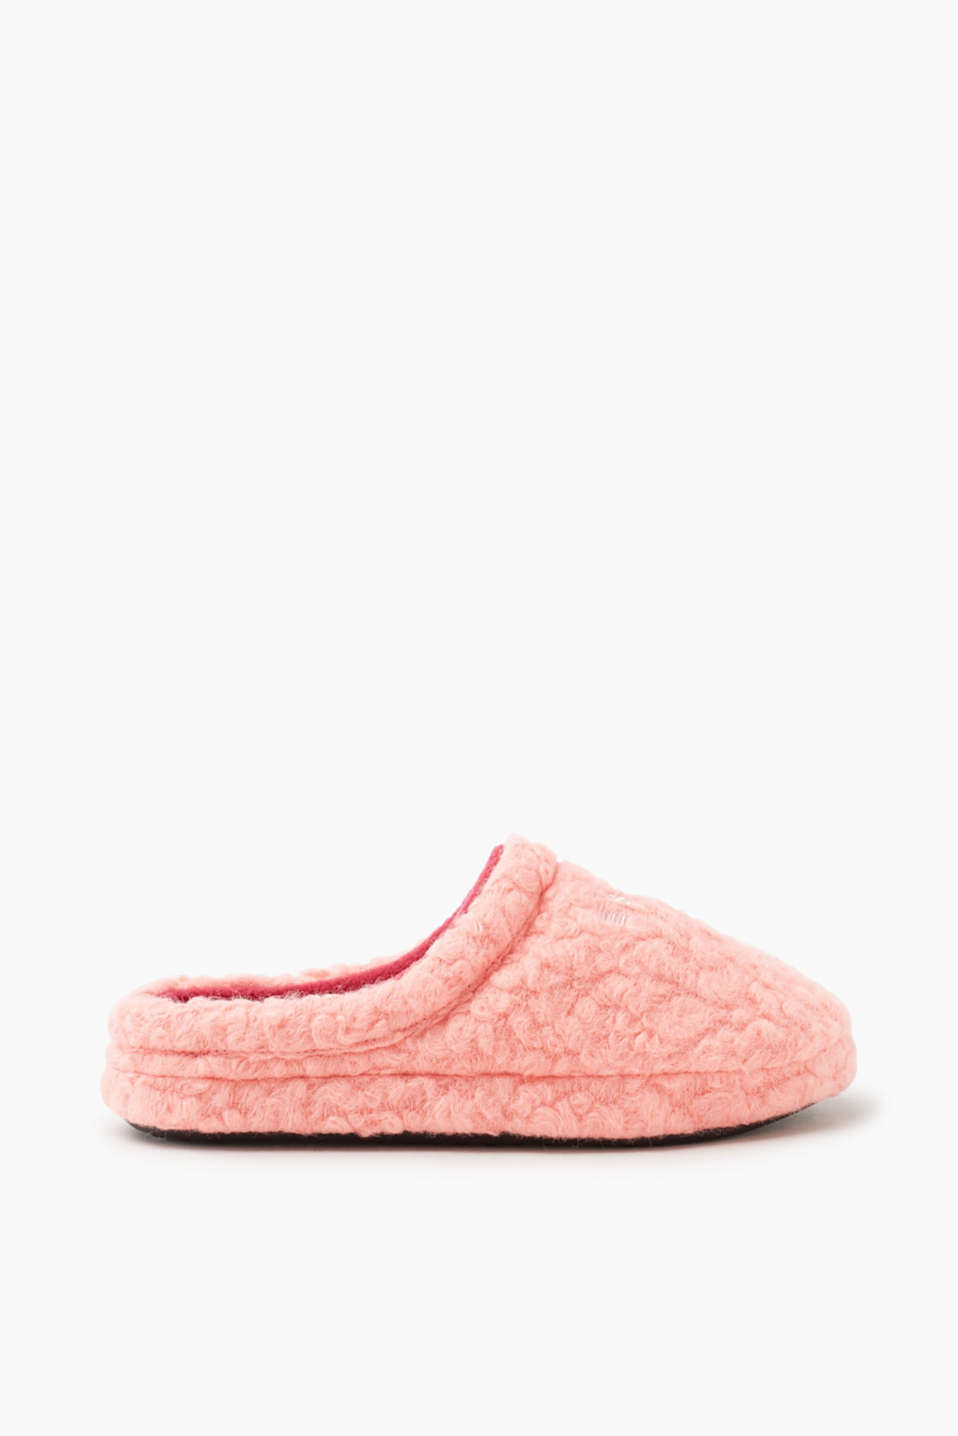 With their soft fleece, these slippers are warm and cosy, soft and lightweight